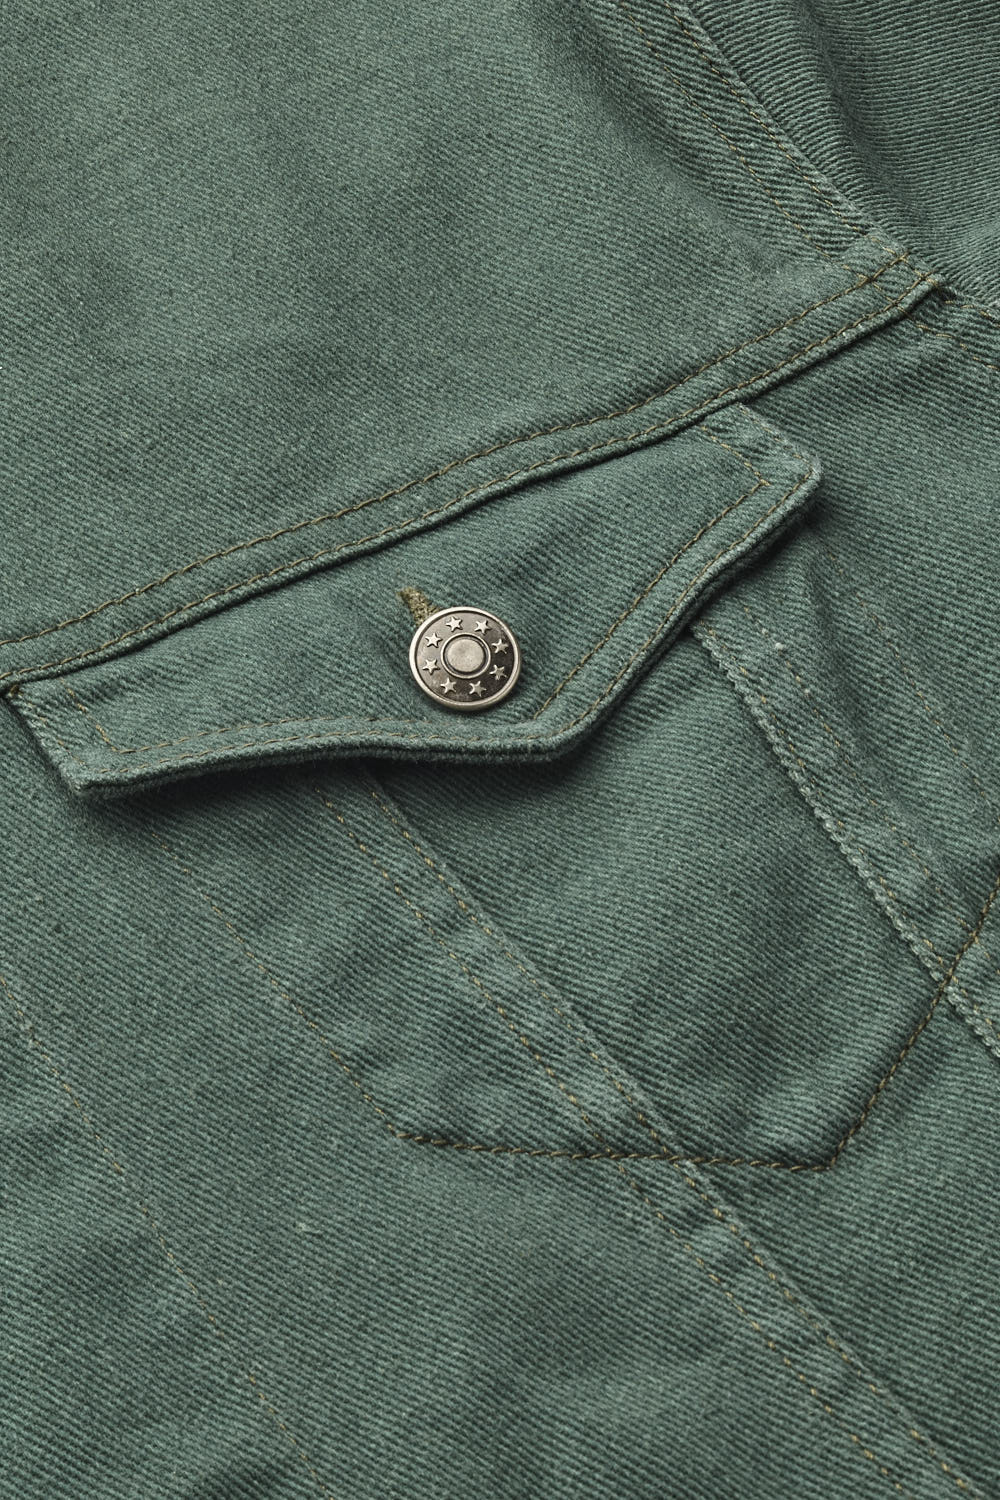 Denim Jacket - Moss